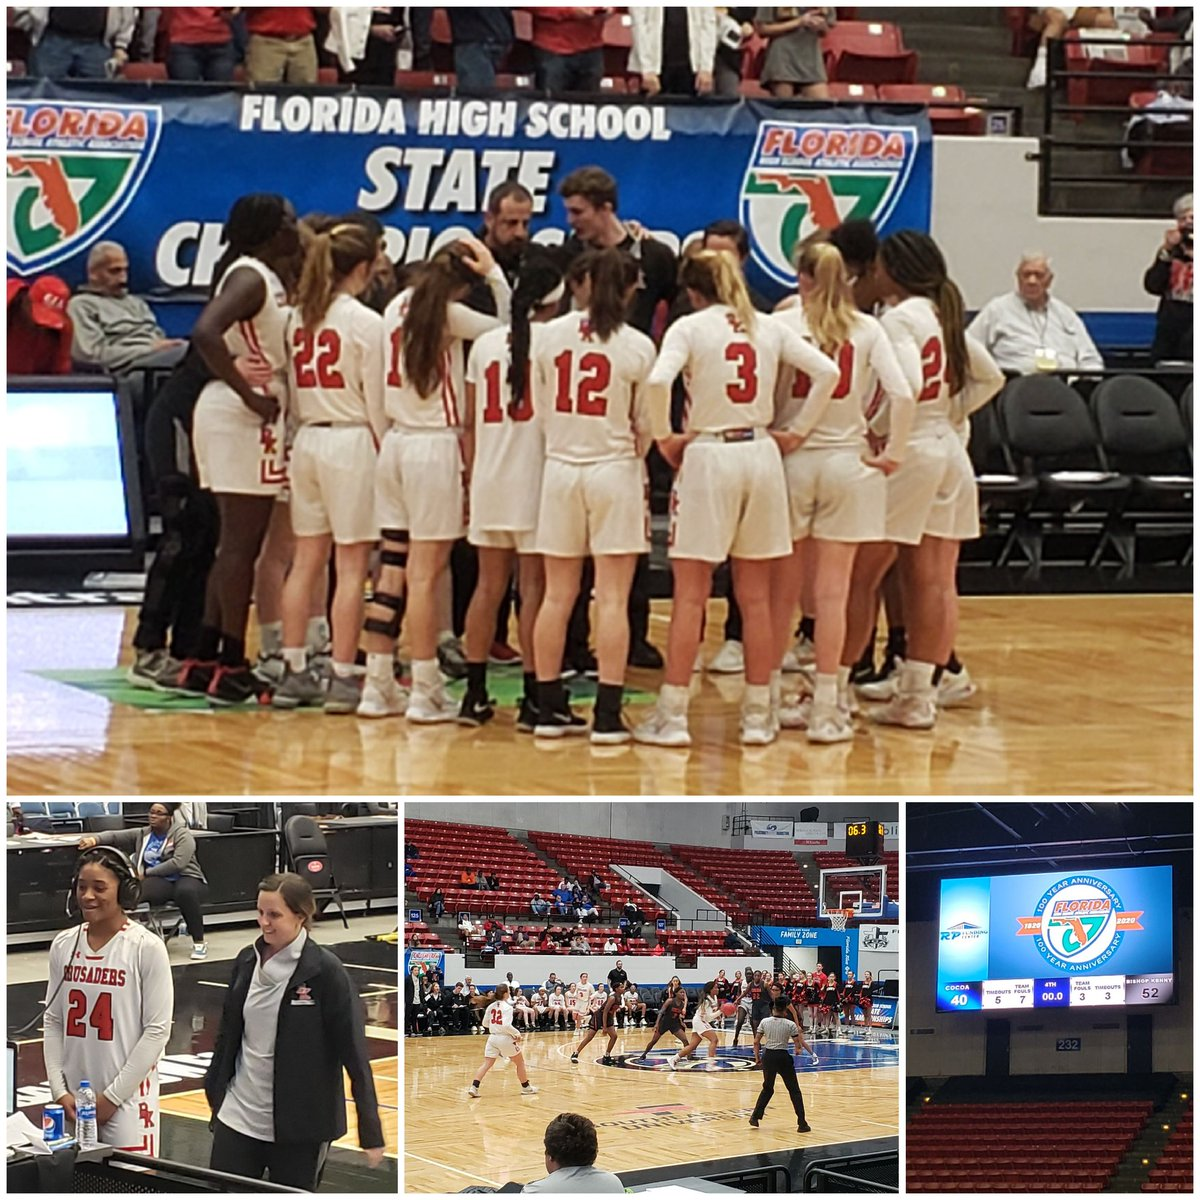 Congrats @CoachClark33 and the @BK_GBB team on the final 4 win today in Lakeland!! State championship Saturday! Leave it all on the floor #goodluck #fhsaa #girlsbasketball #jacksonvillepic.twitter.com/7C8s2zbQRC